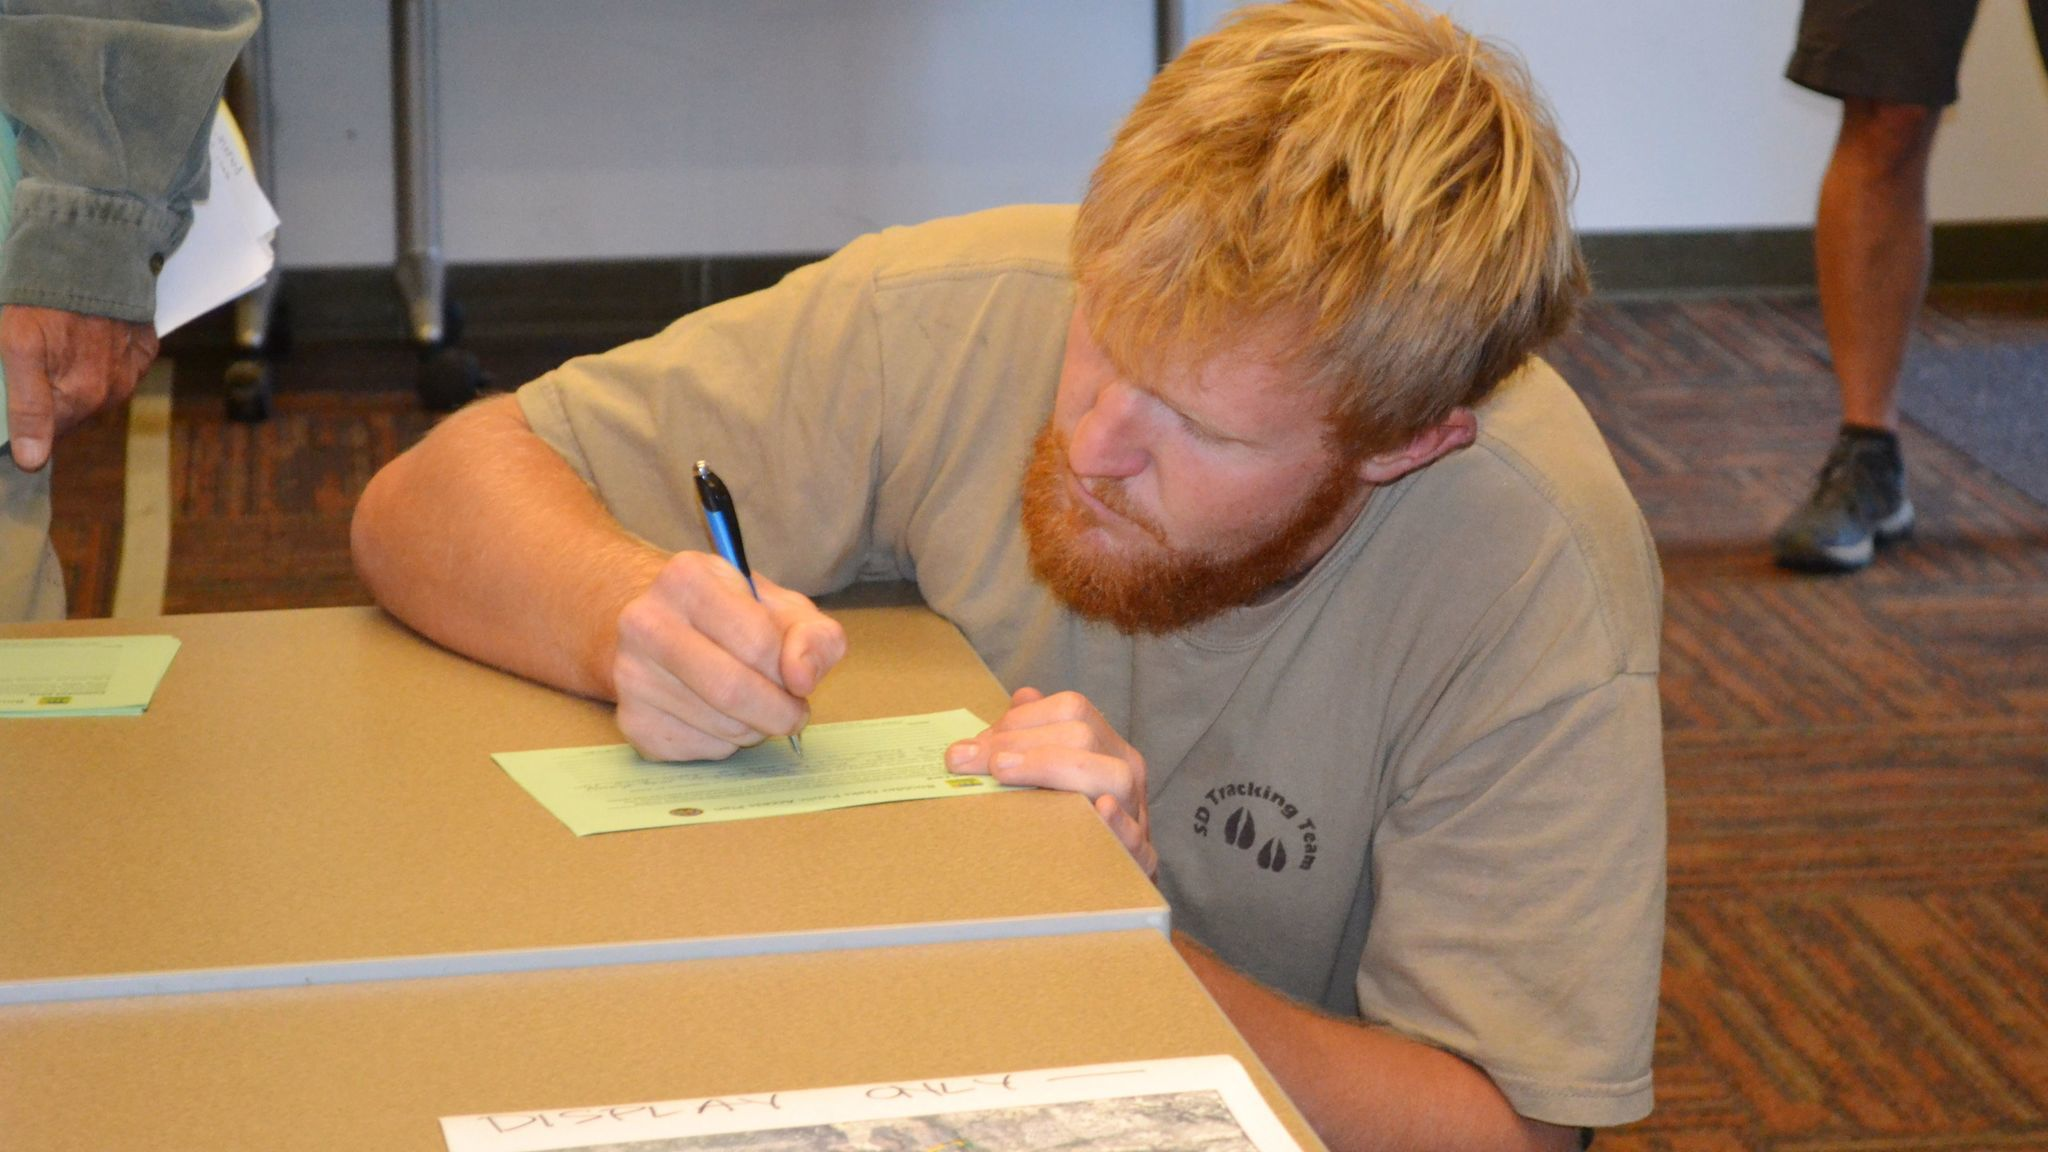 Mussey Grade Road resident Chris Meador fills out a comment card.